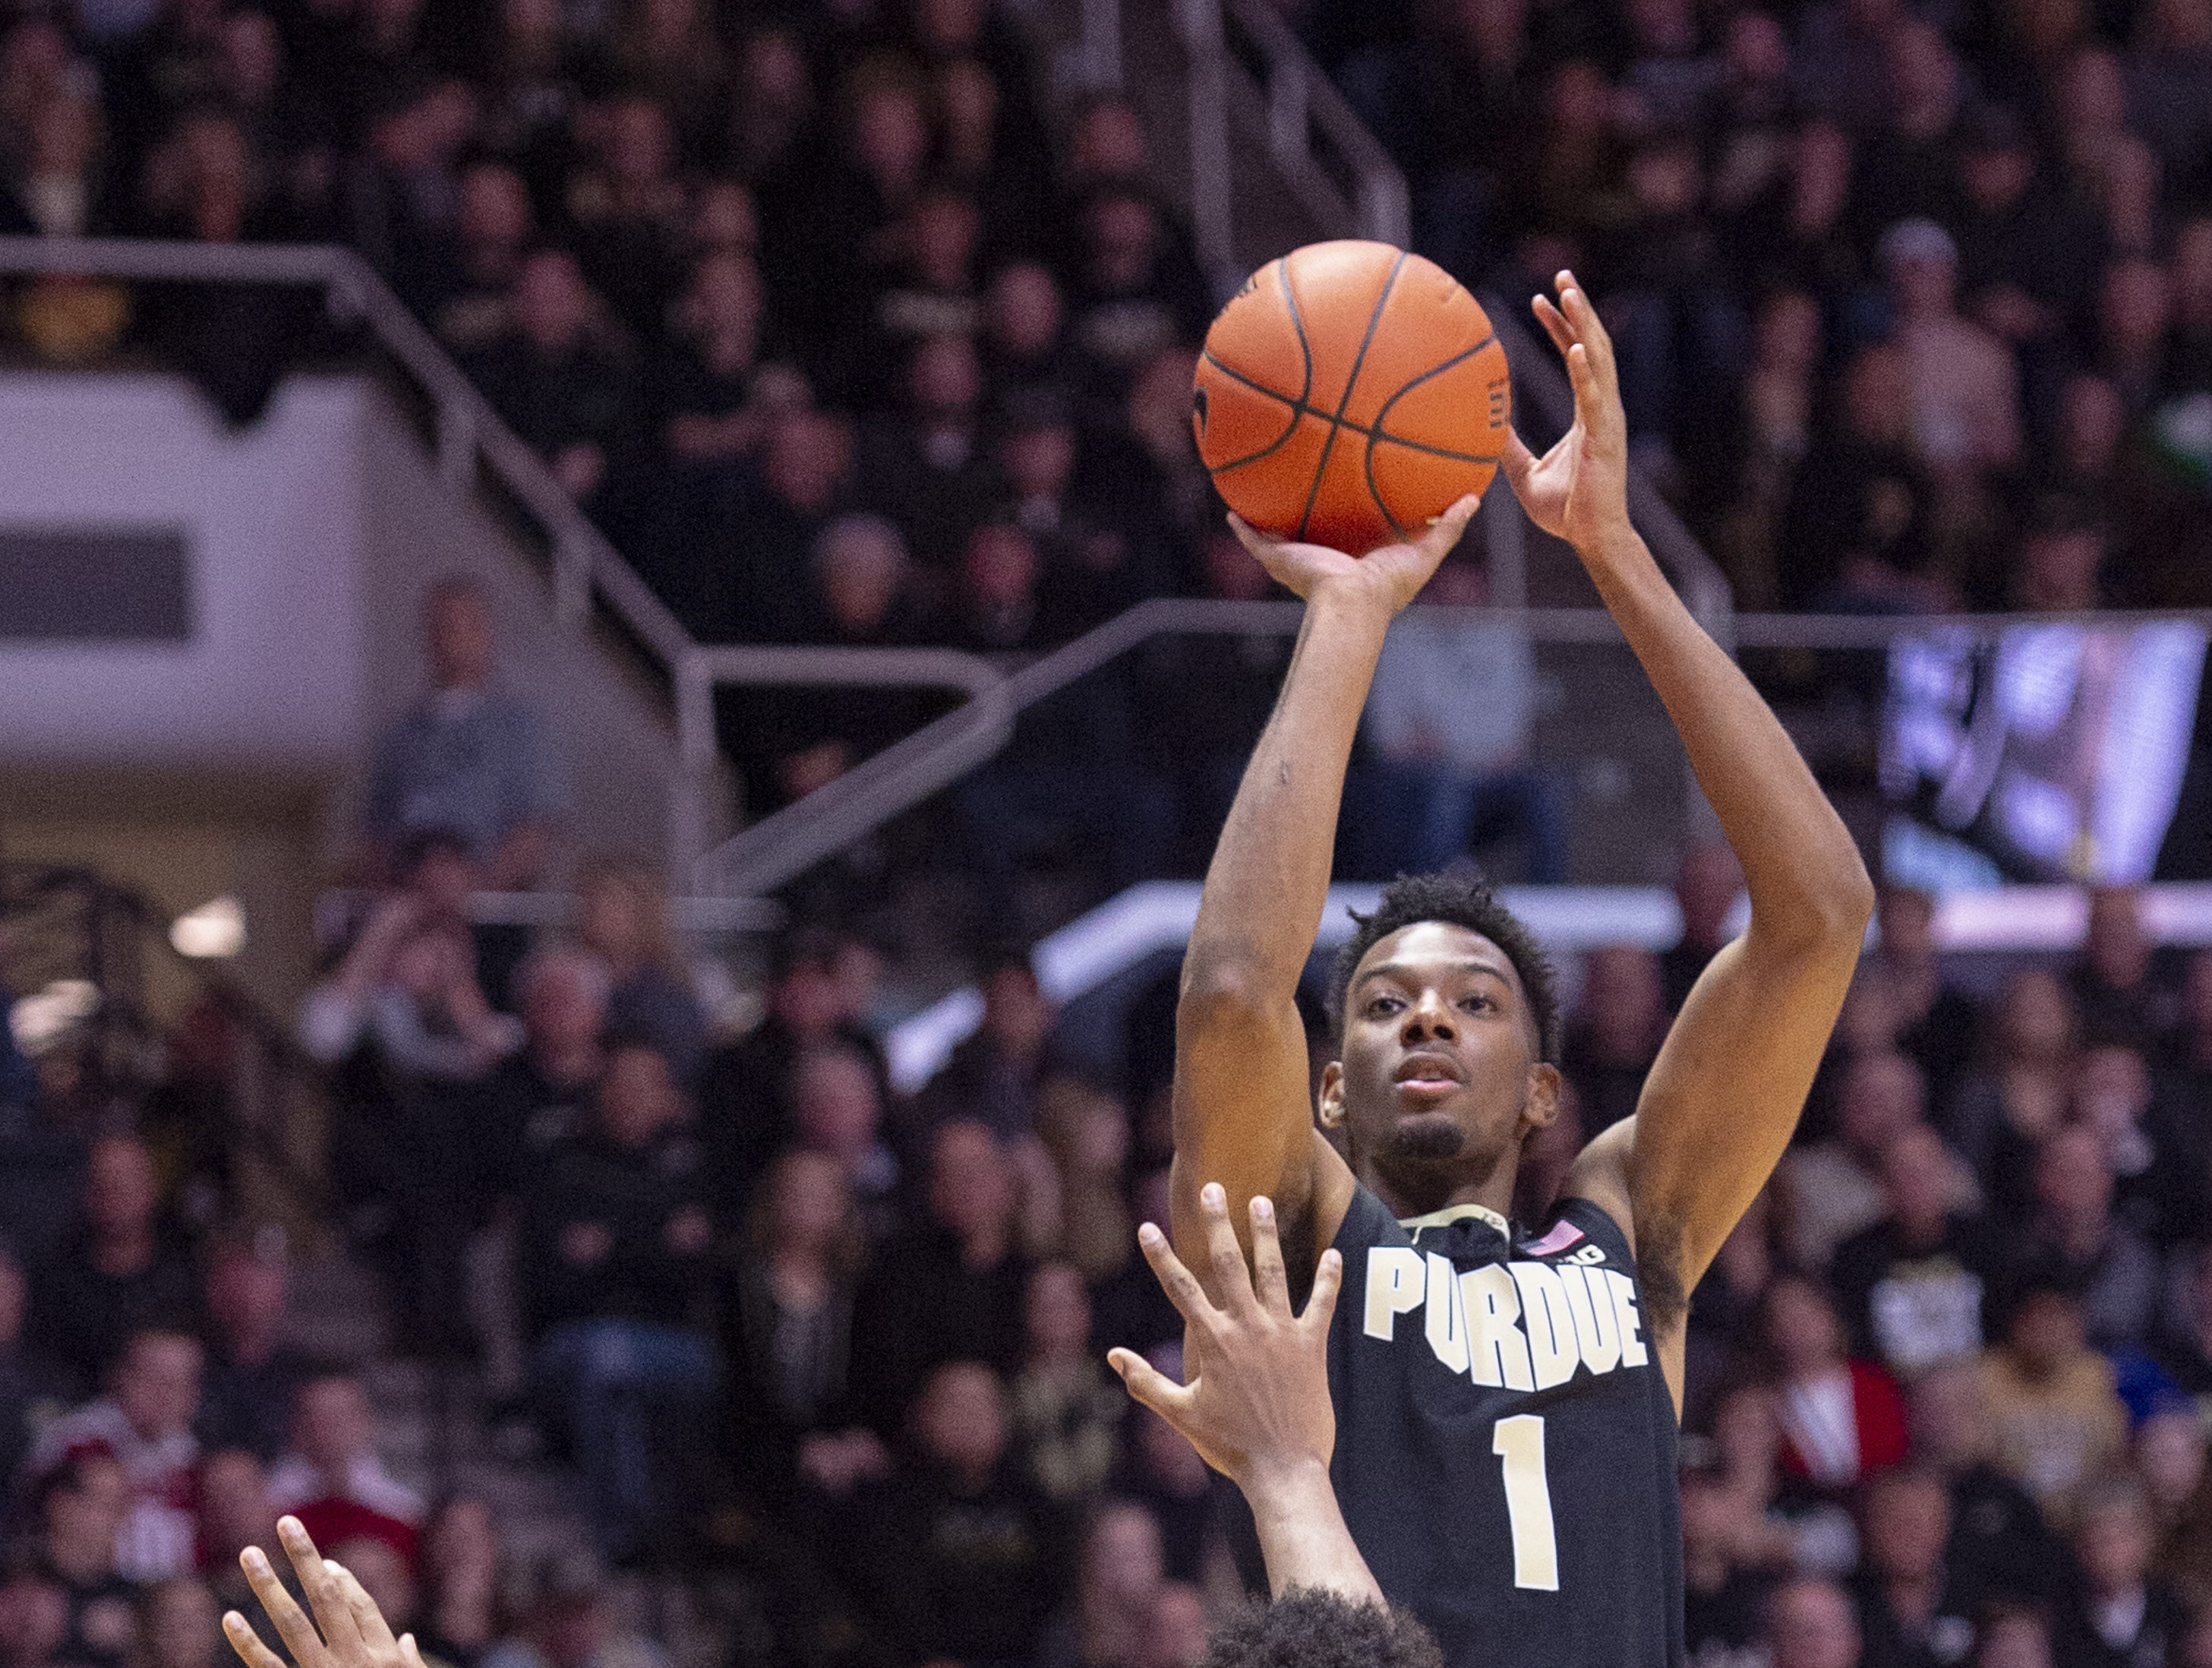 Purdue Boilermakers forward Aaron Wheeler (1) puts pu a shot during the second half of action. Purdue hosted Indiana in a BigTen men's basketball matchup, Saturday, Jan. 19, 2019. Purdue won 70-55.